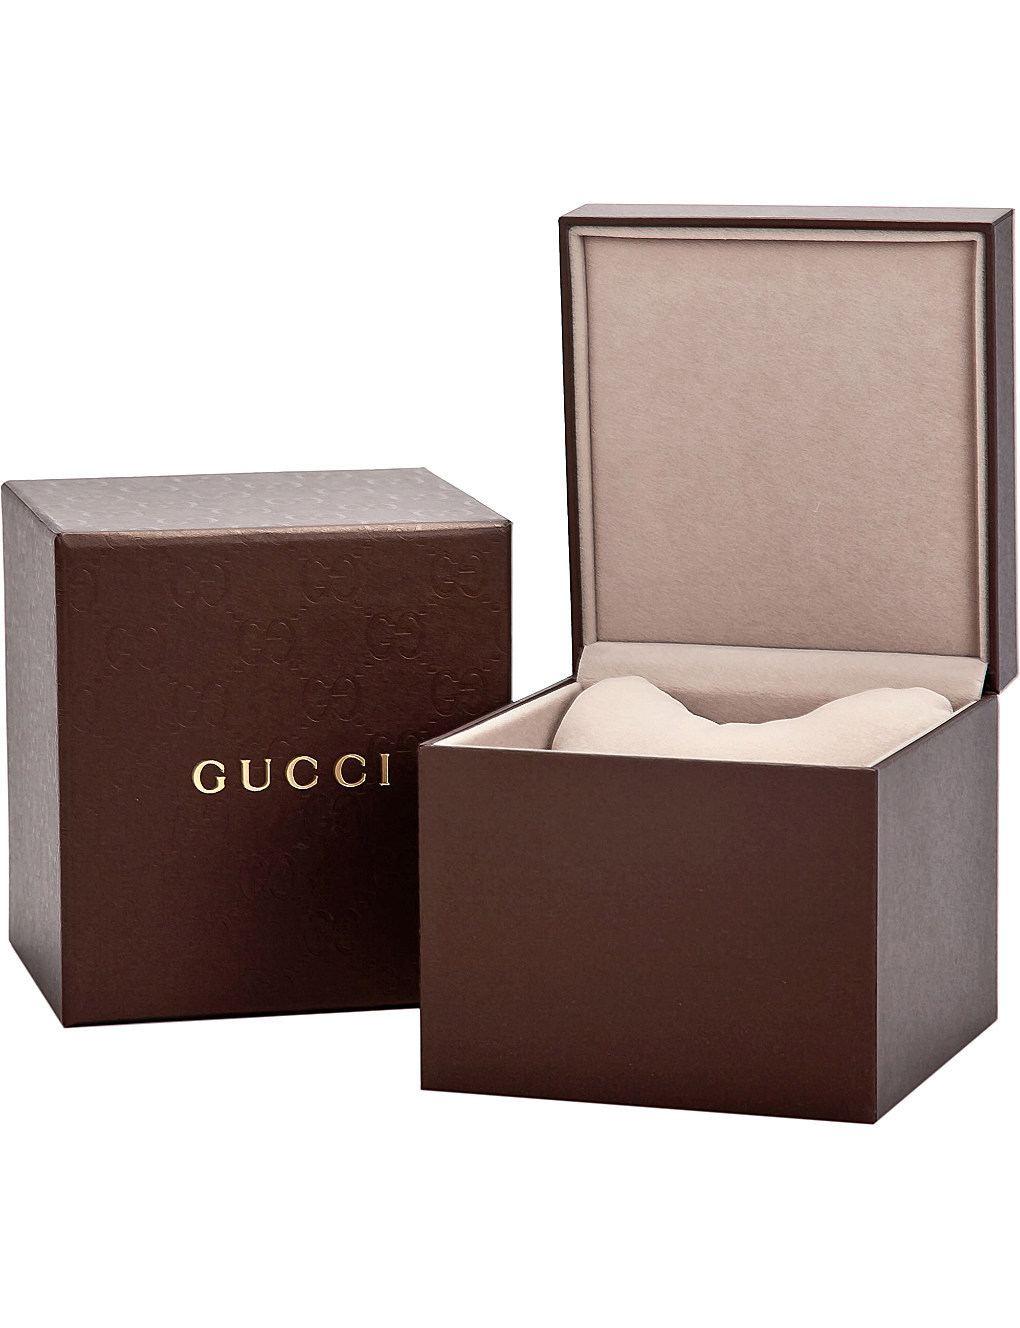 【国内発送】GUCCI 時計 YA136301 Dive stainless steel watch